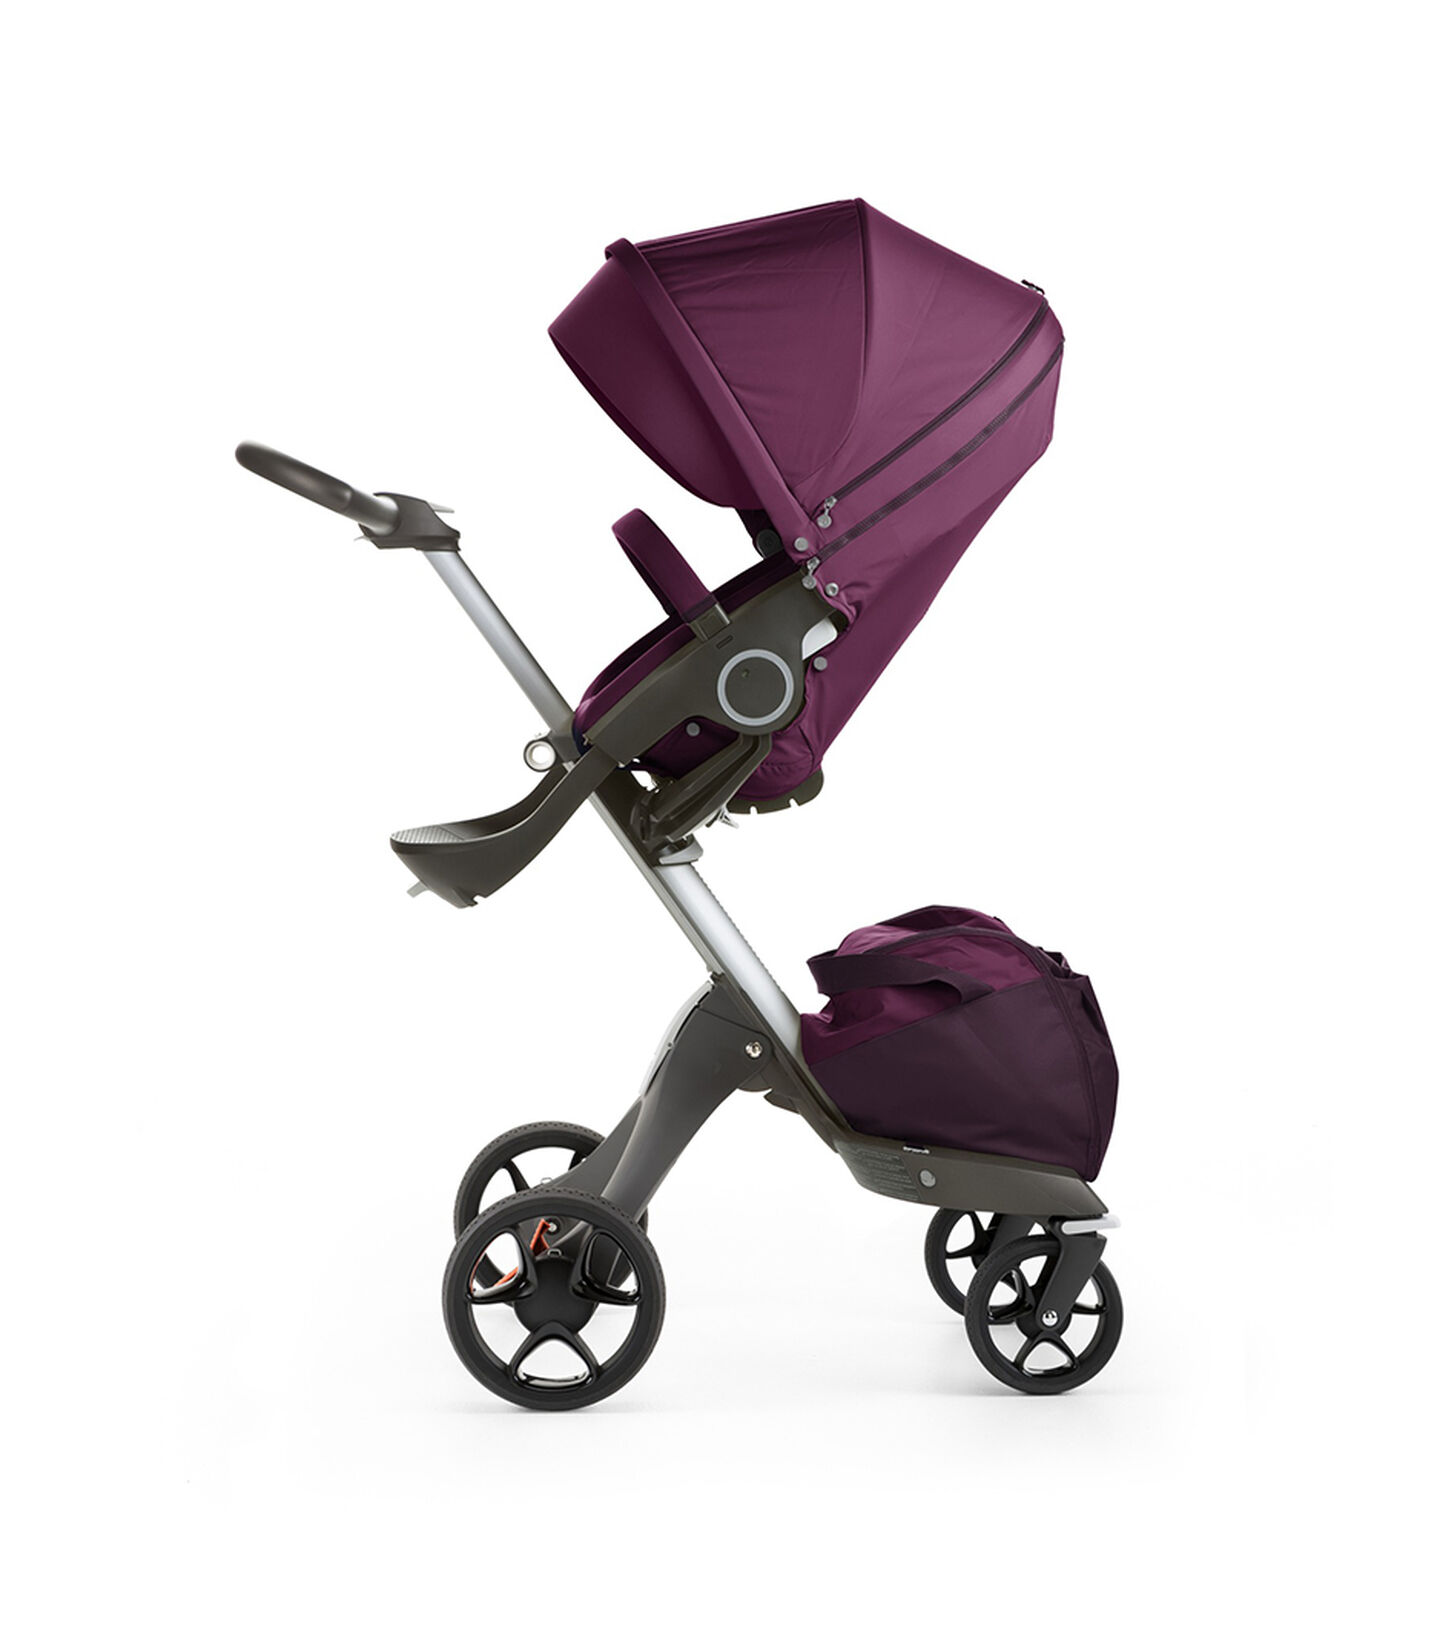 Stokke® Xplory® with Stokke® Stroller Seat, Purple. New wheels 2016.